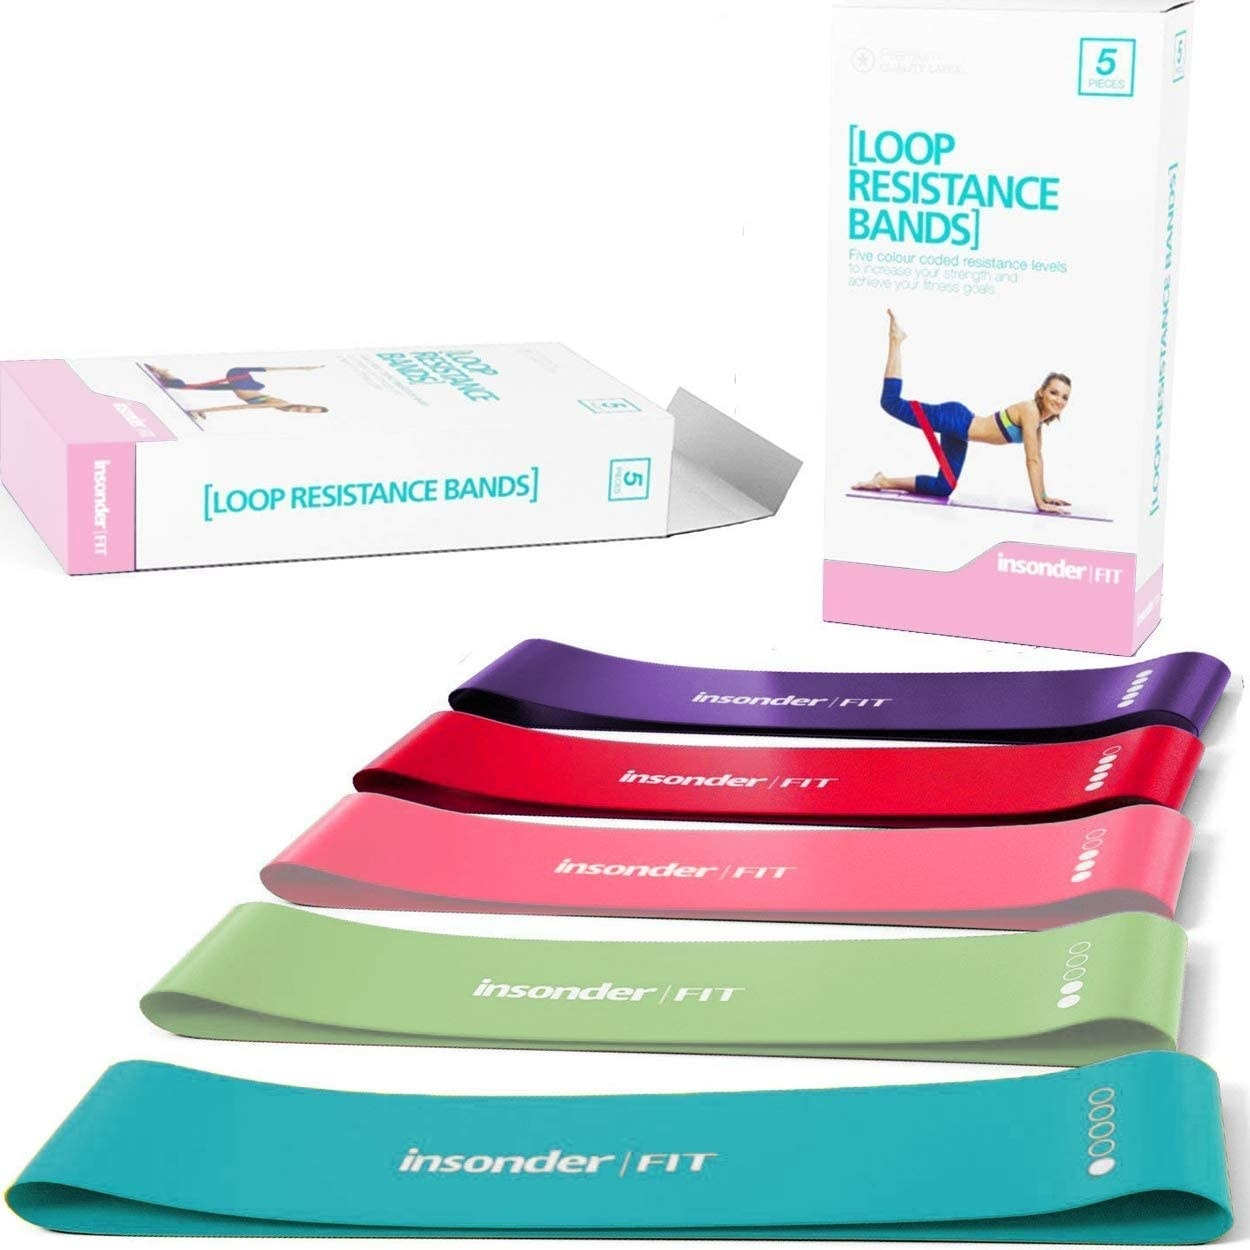 A set of resistance bands in blue, green, pink, red, and purple